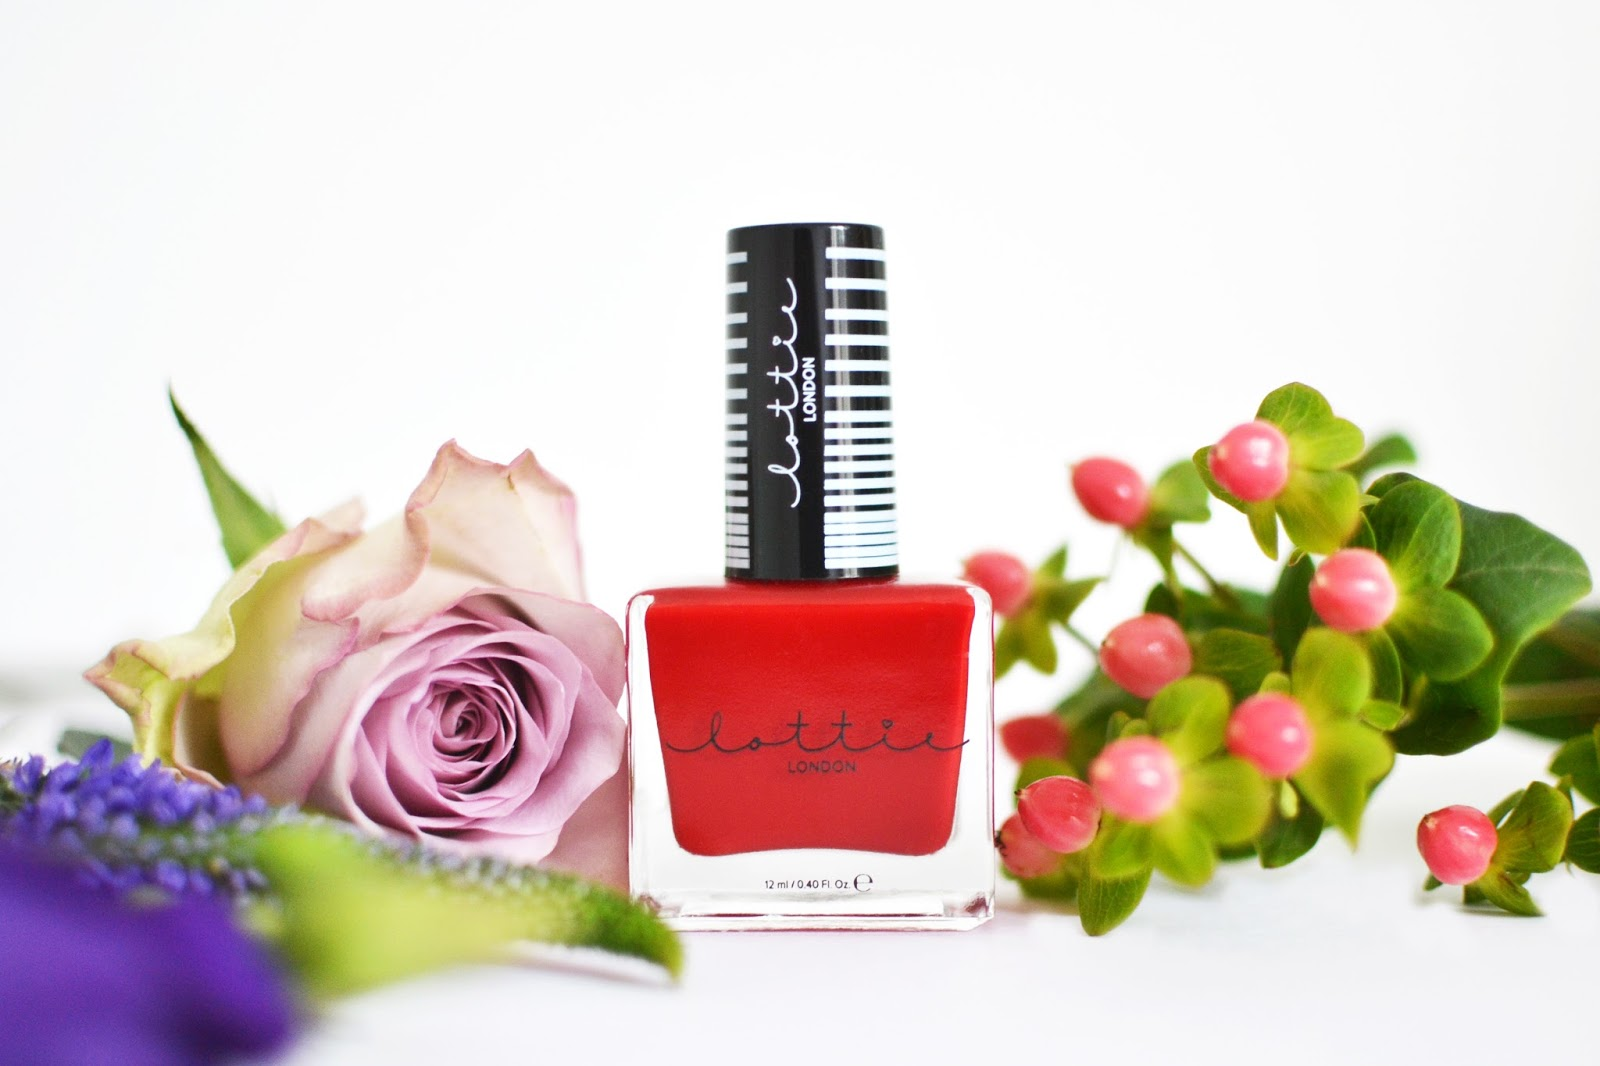 classic red nail polish, icon-o-holic by lottie london